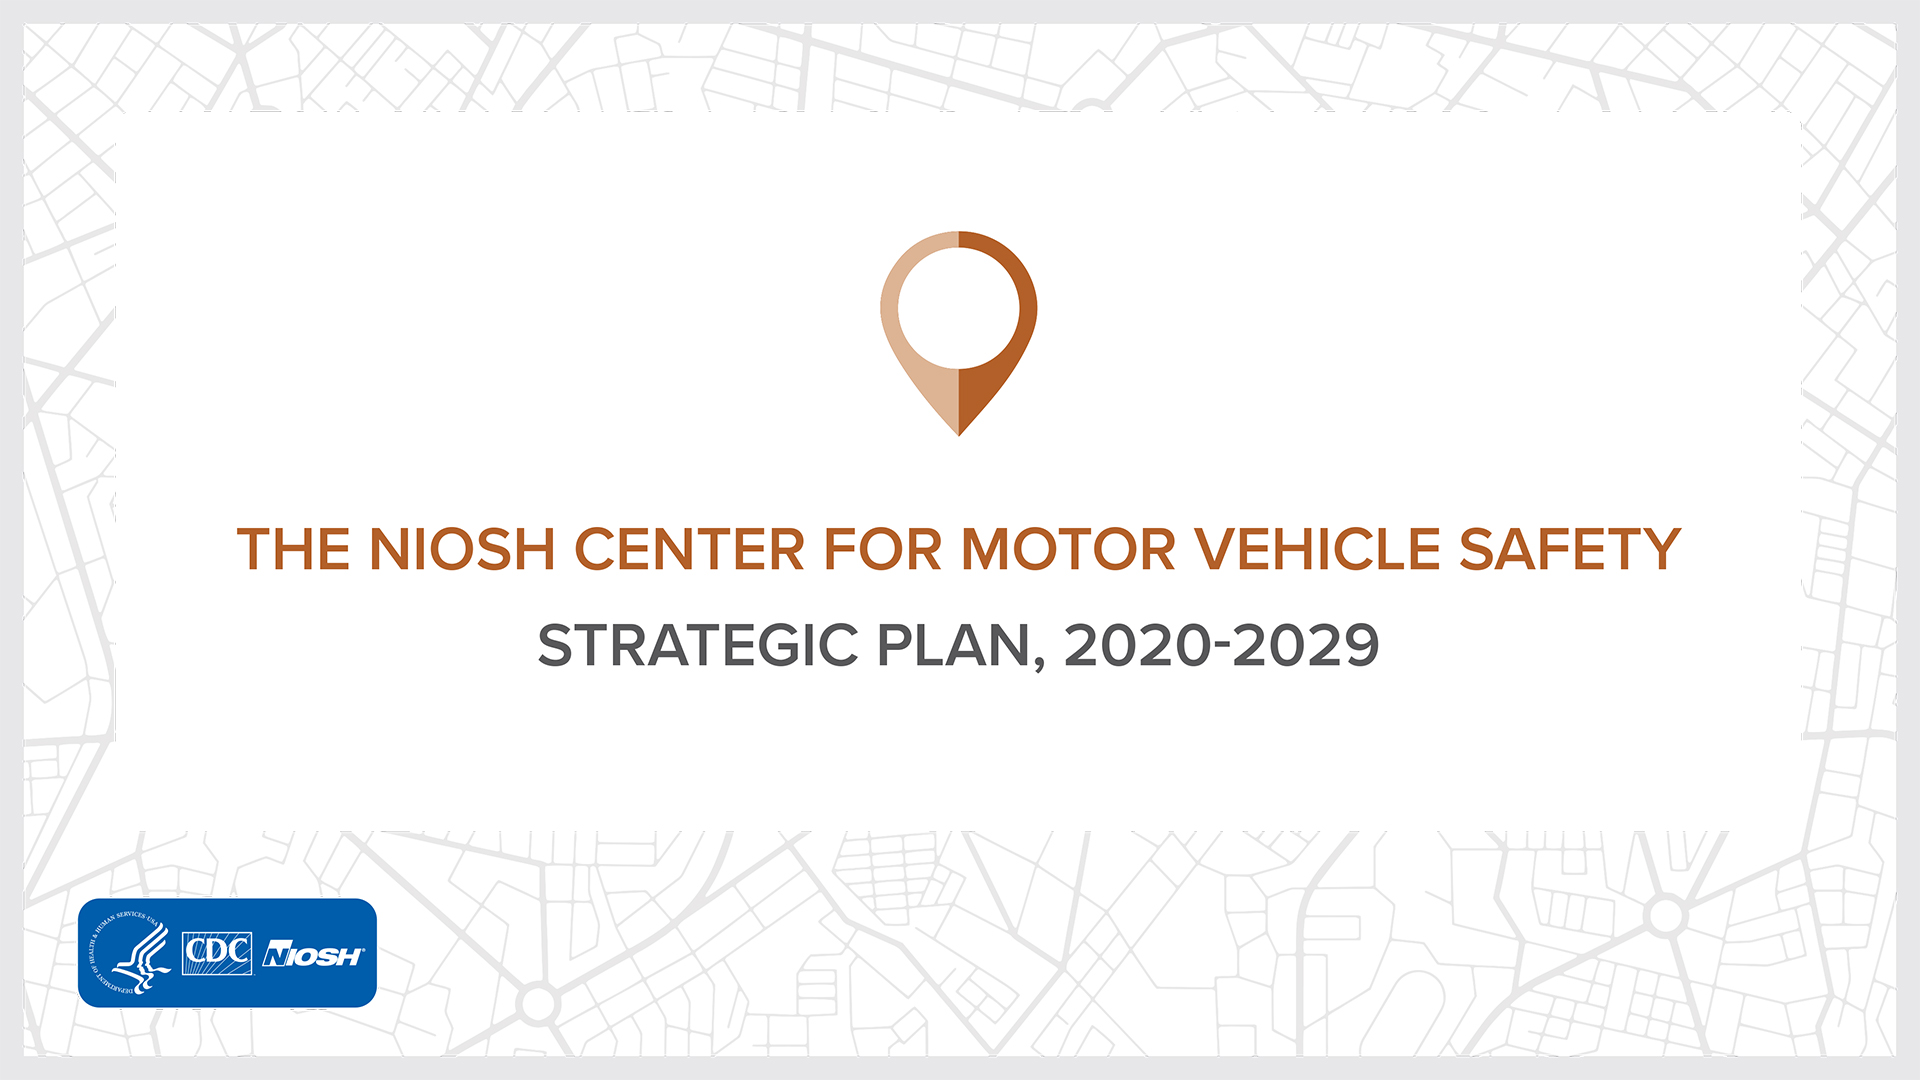 The NIOSH Center for Motor Vehicle Safety Strategic Plan, 2020-2029